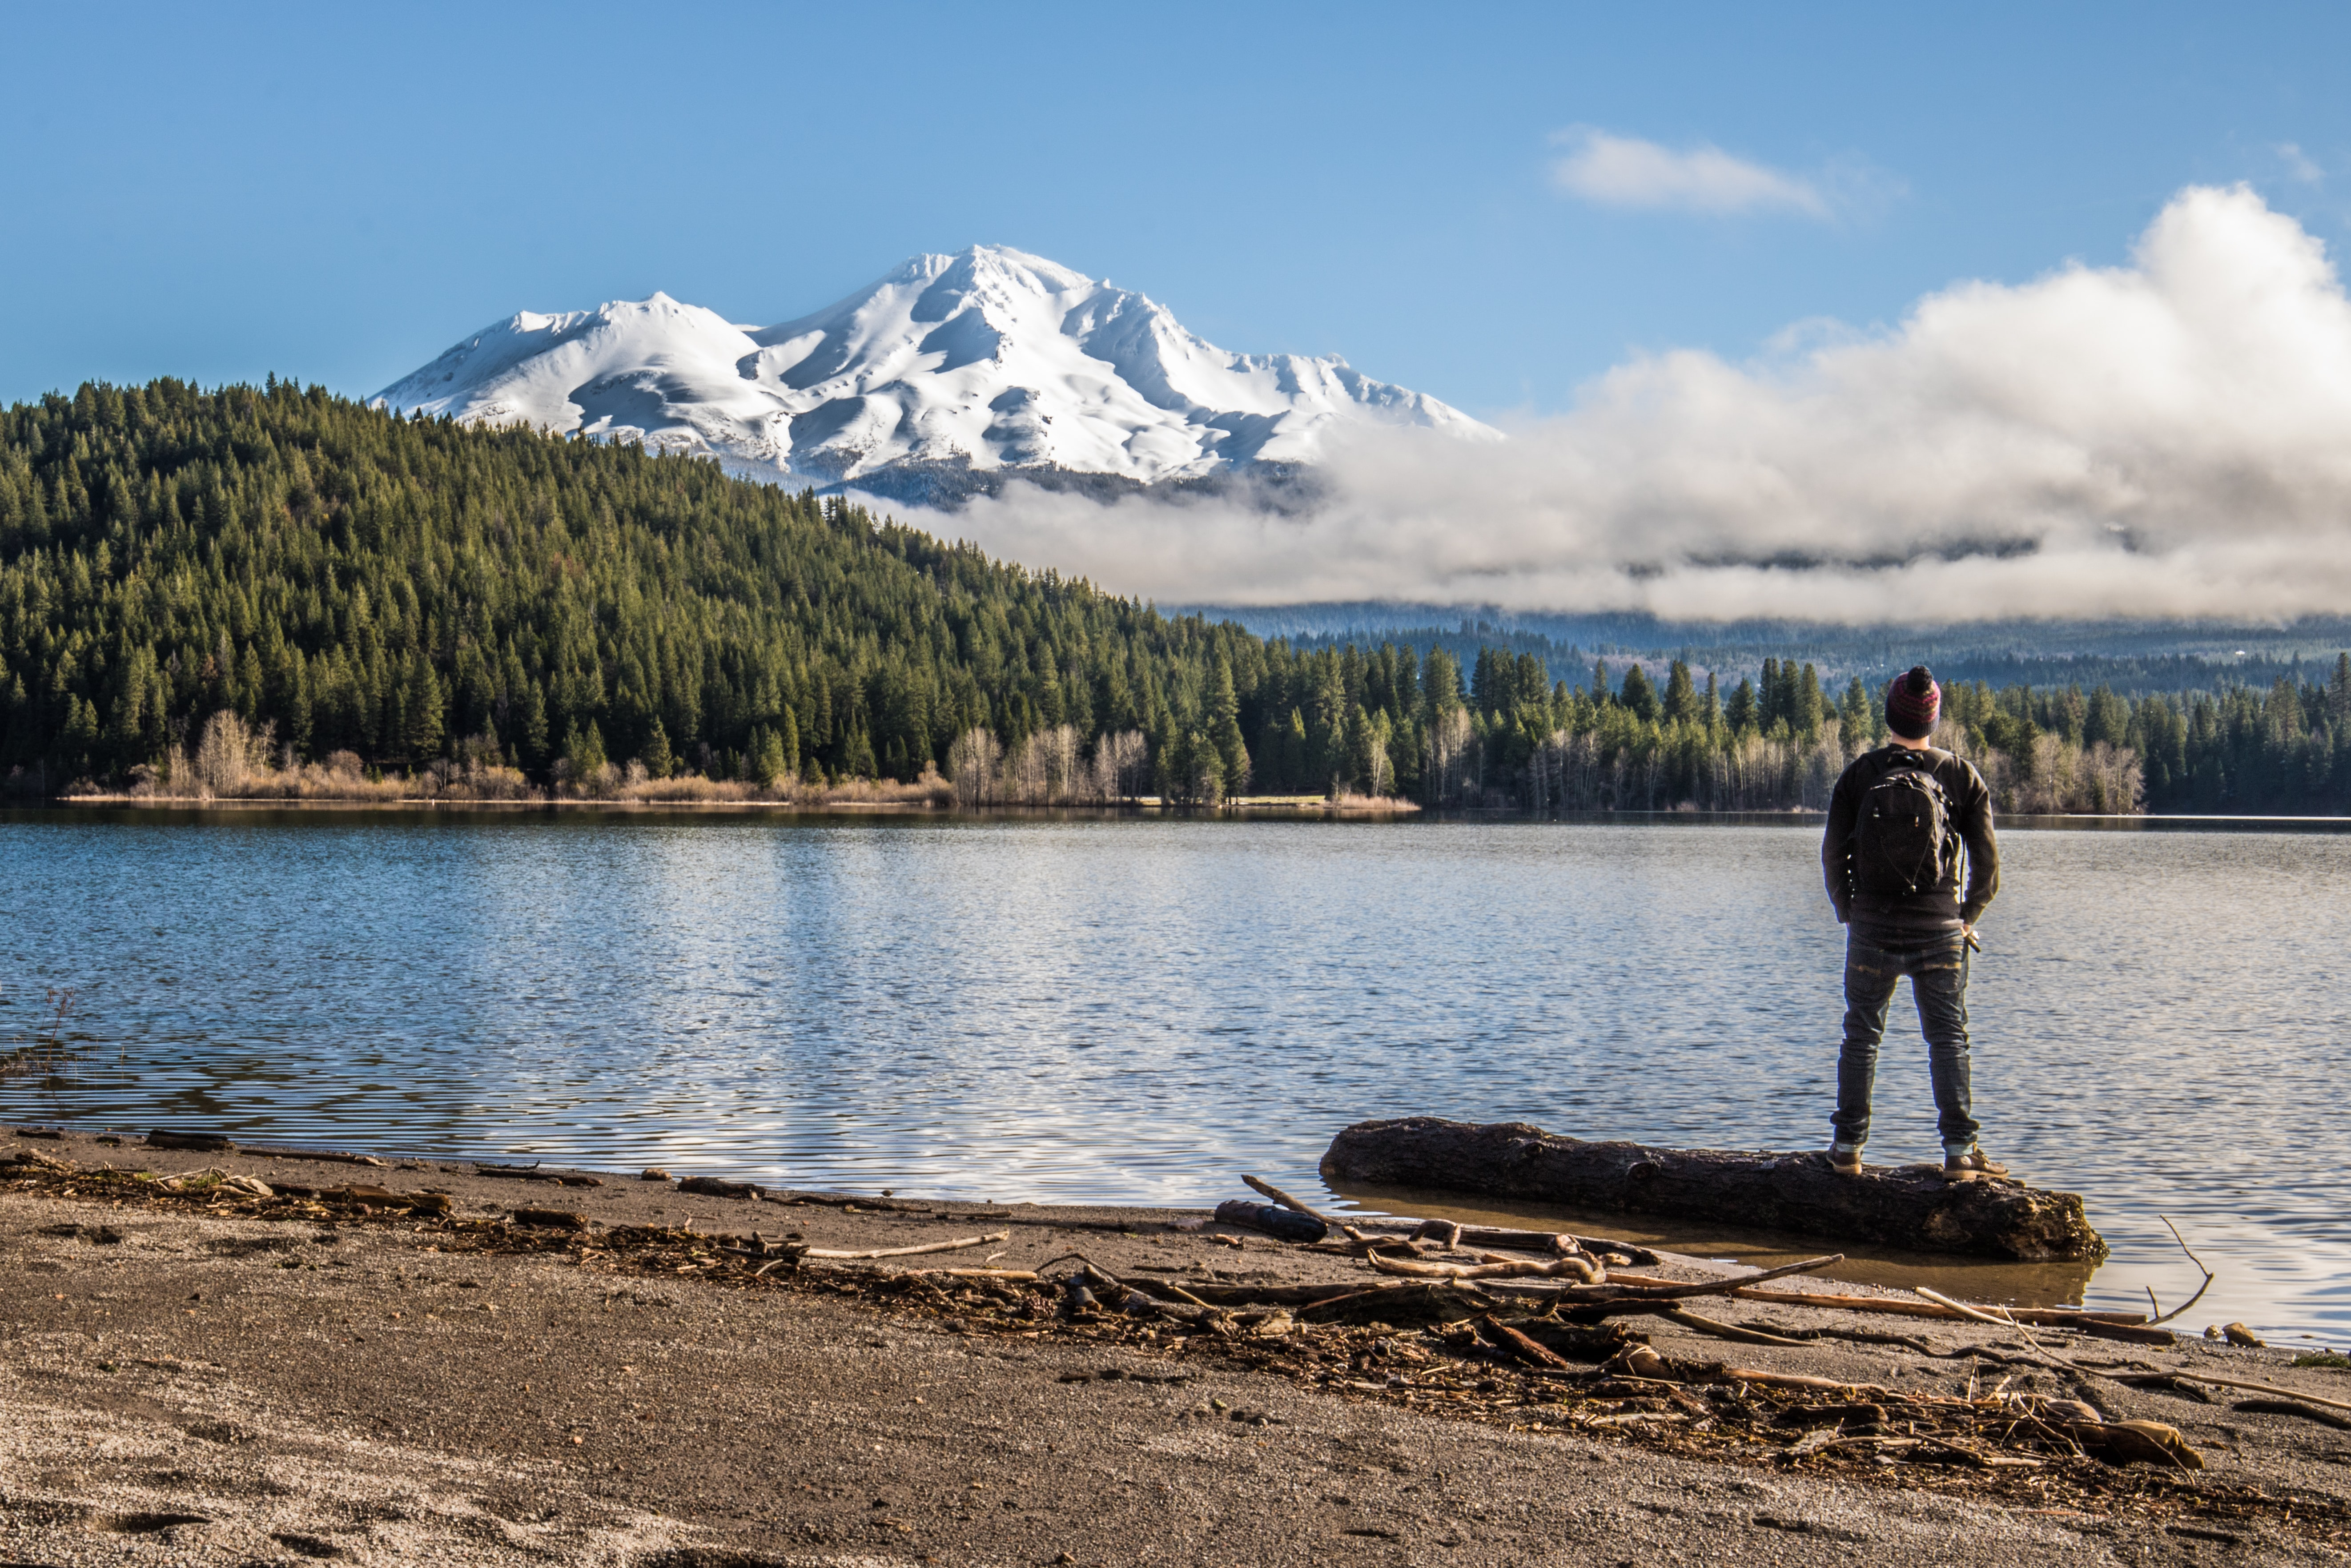 man standing beside body of water near green high trees and white mountain under blue and white sky during daytime